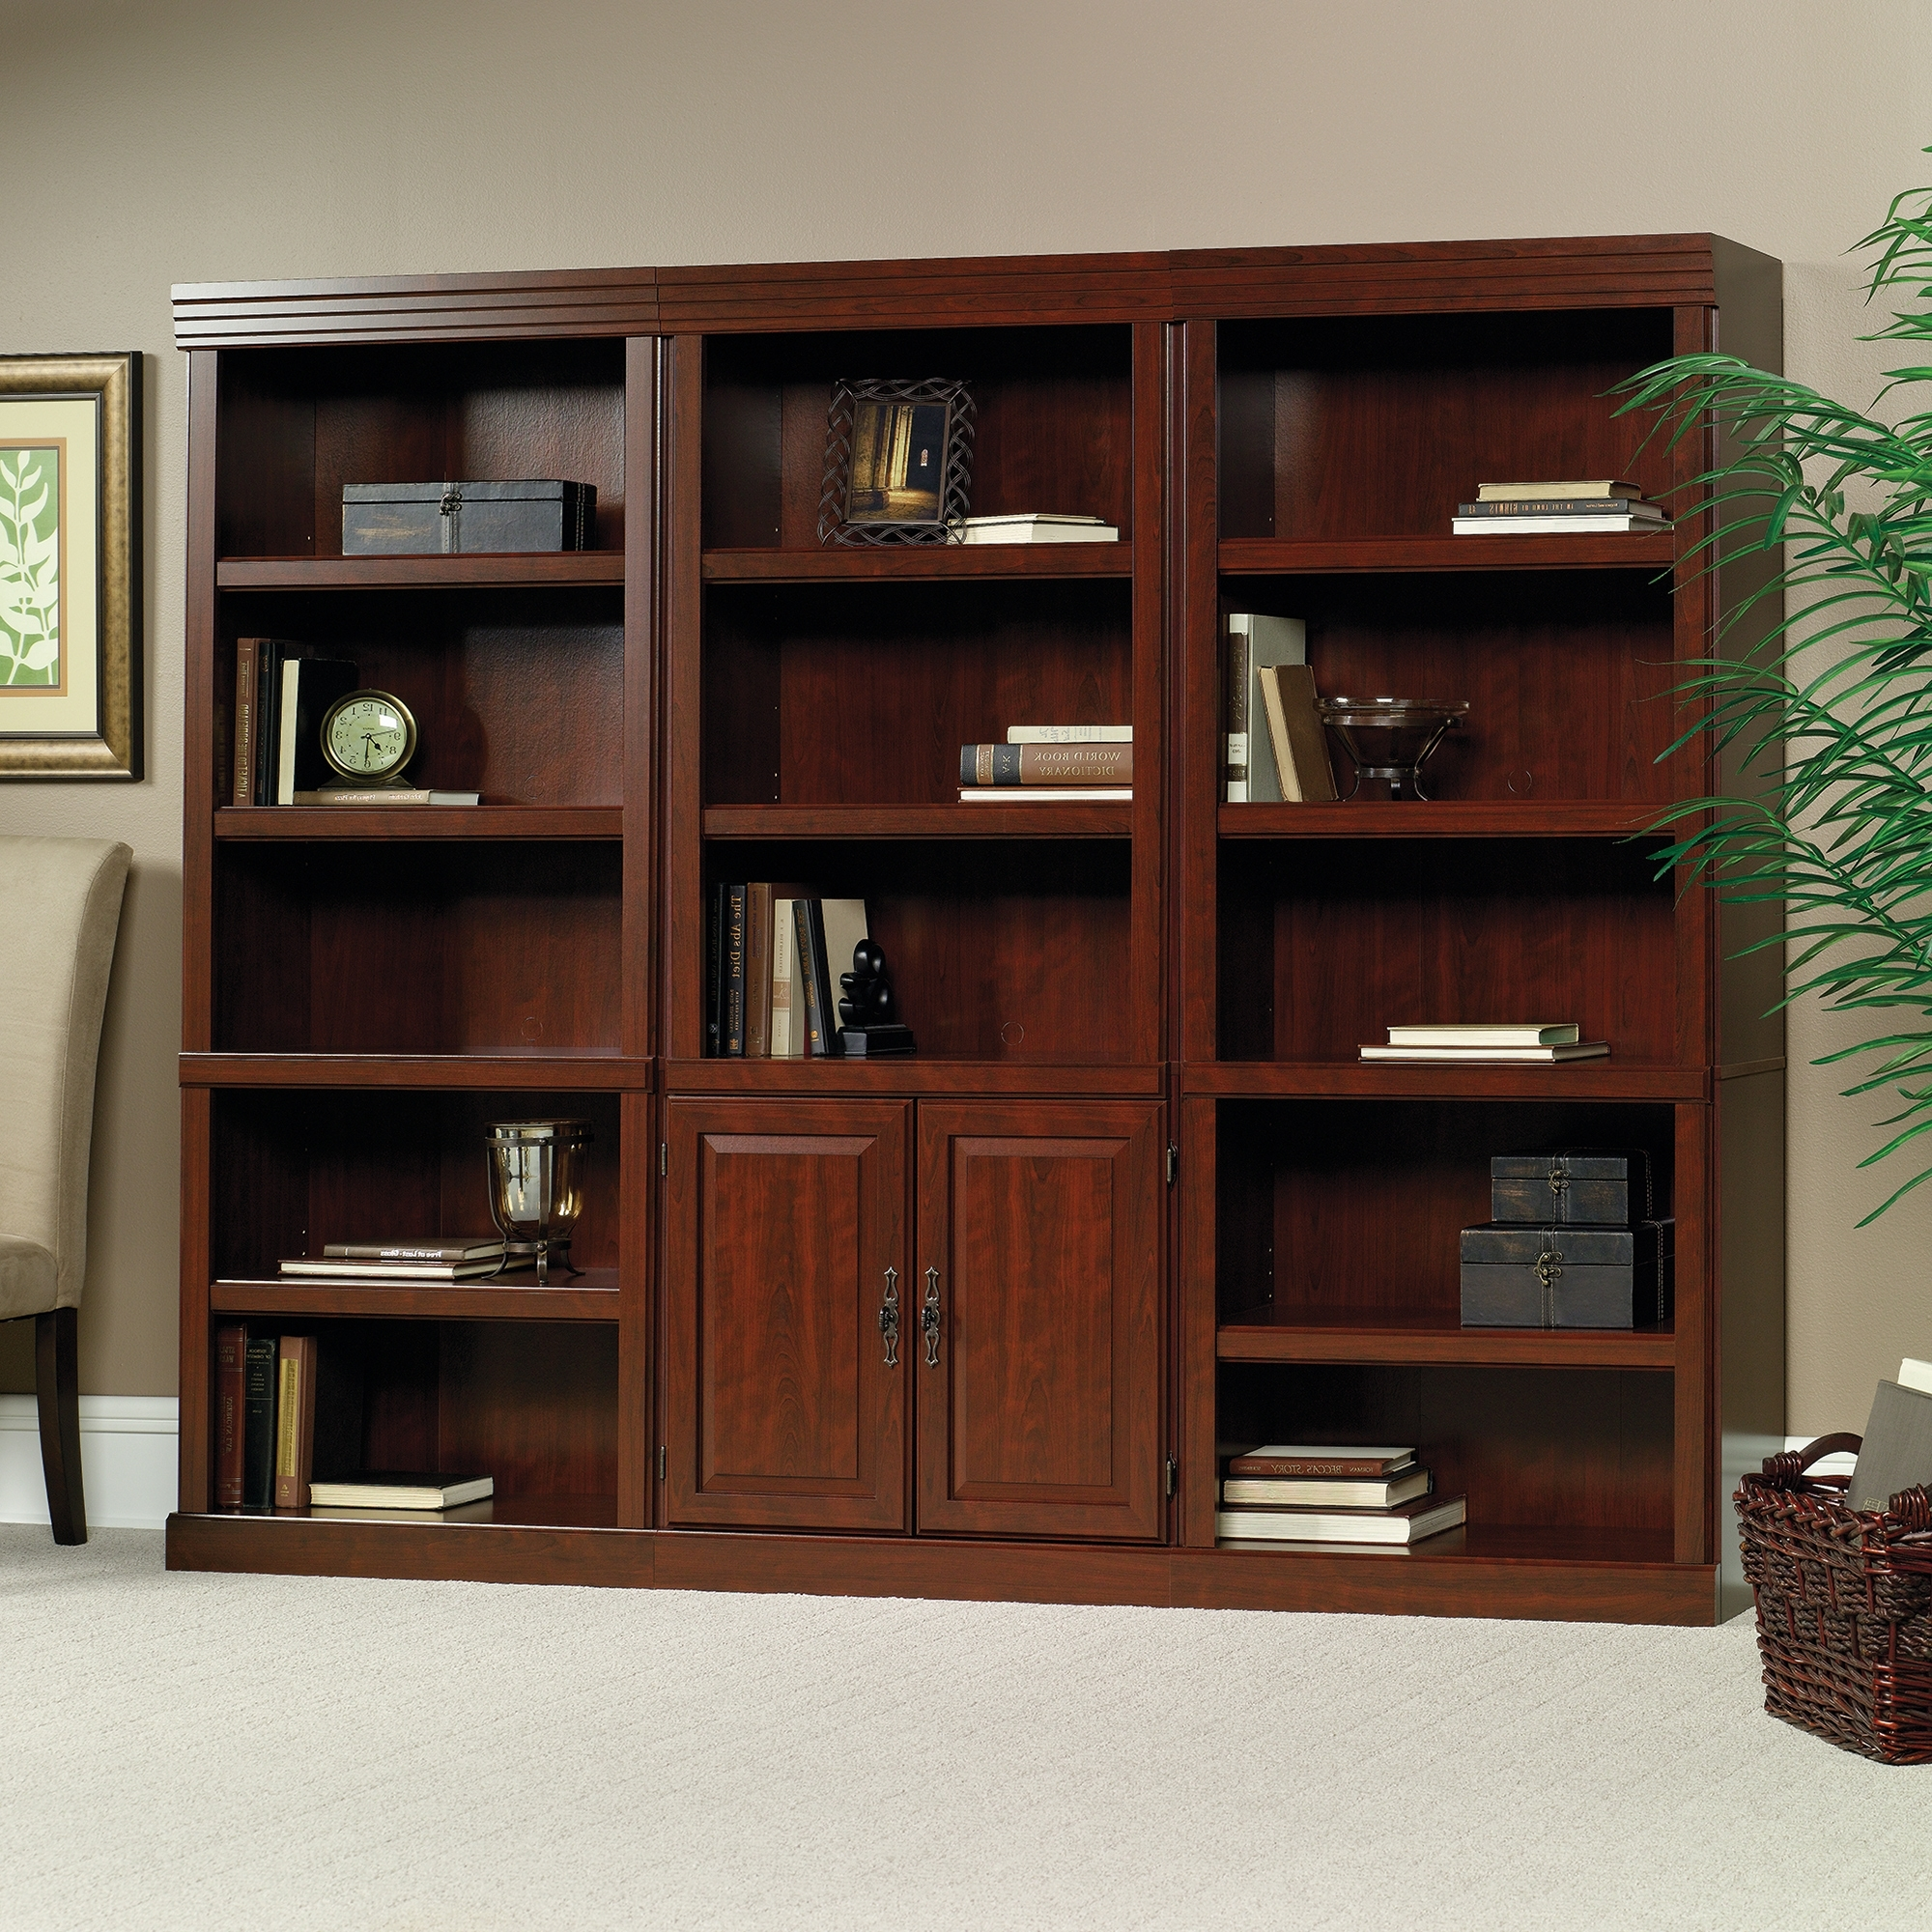 Widely Used Bookcases Ideas: Bookcase With Classic Cherry Finish Sauder Sauder With Regard To Classic Bookcases (View 15 of 15)